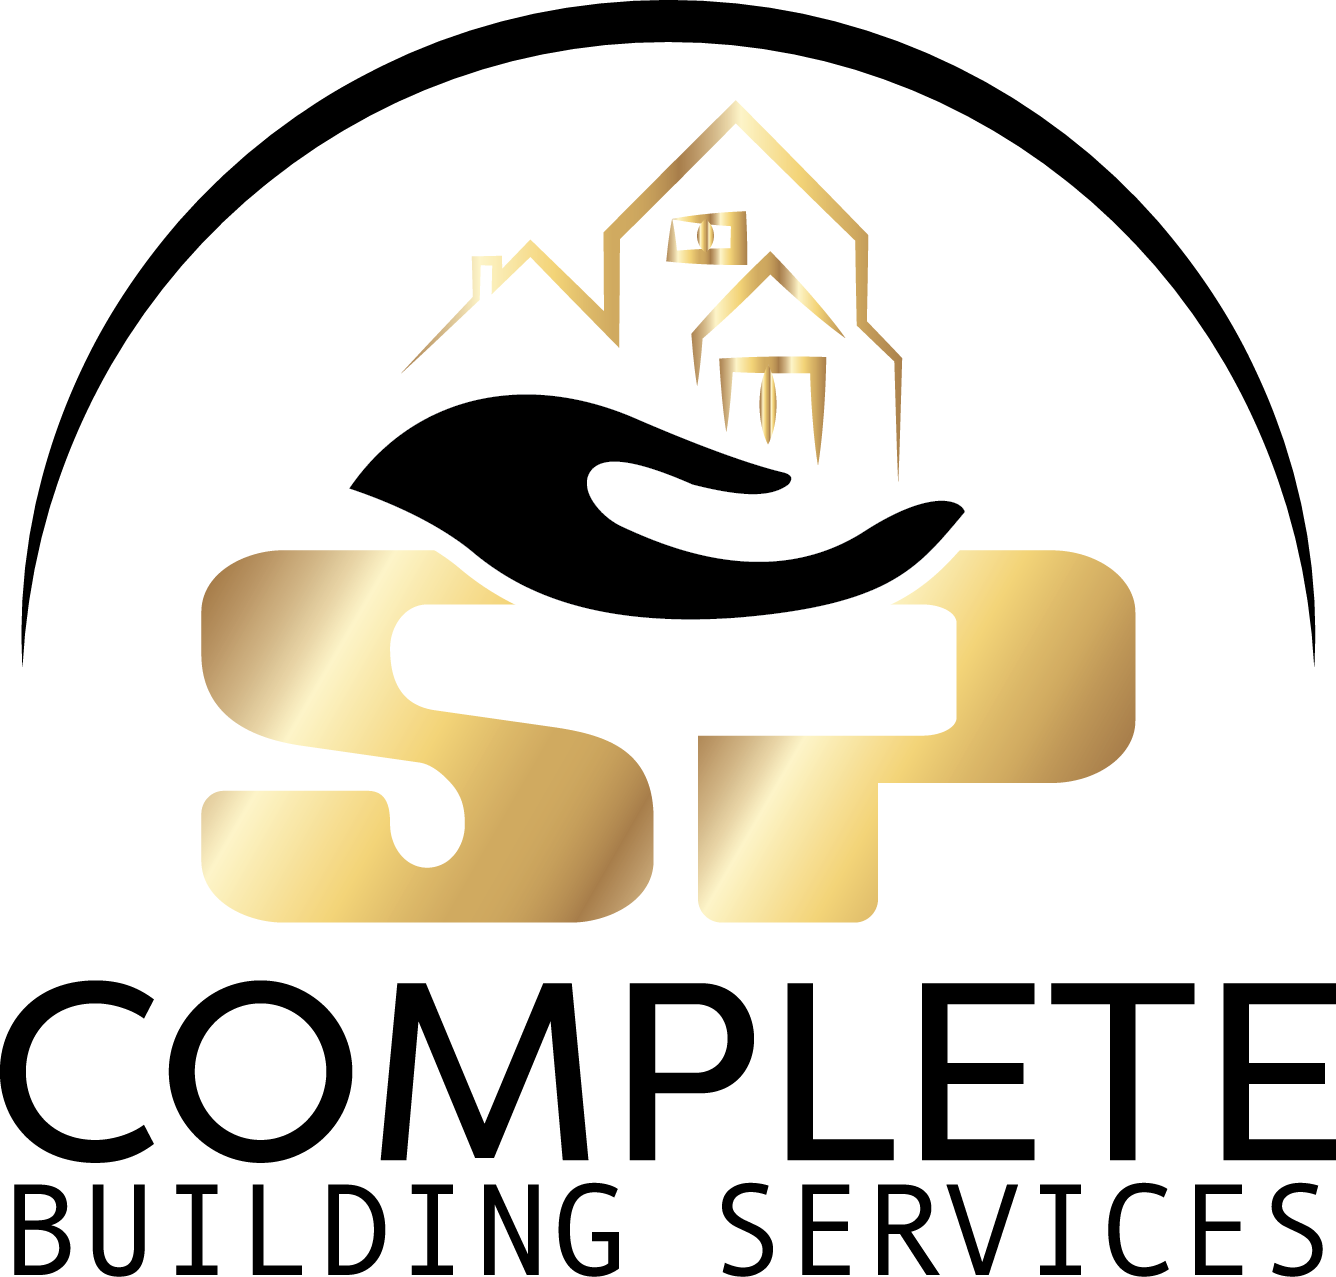 Logo design for sp complete building services by gcd design 9824498 logo design by gcd for sp complete building services small buildingrestoration company in biocorpaavc Choice Image